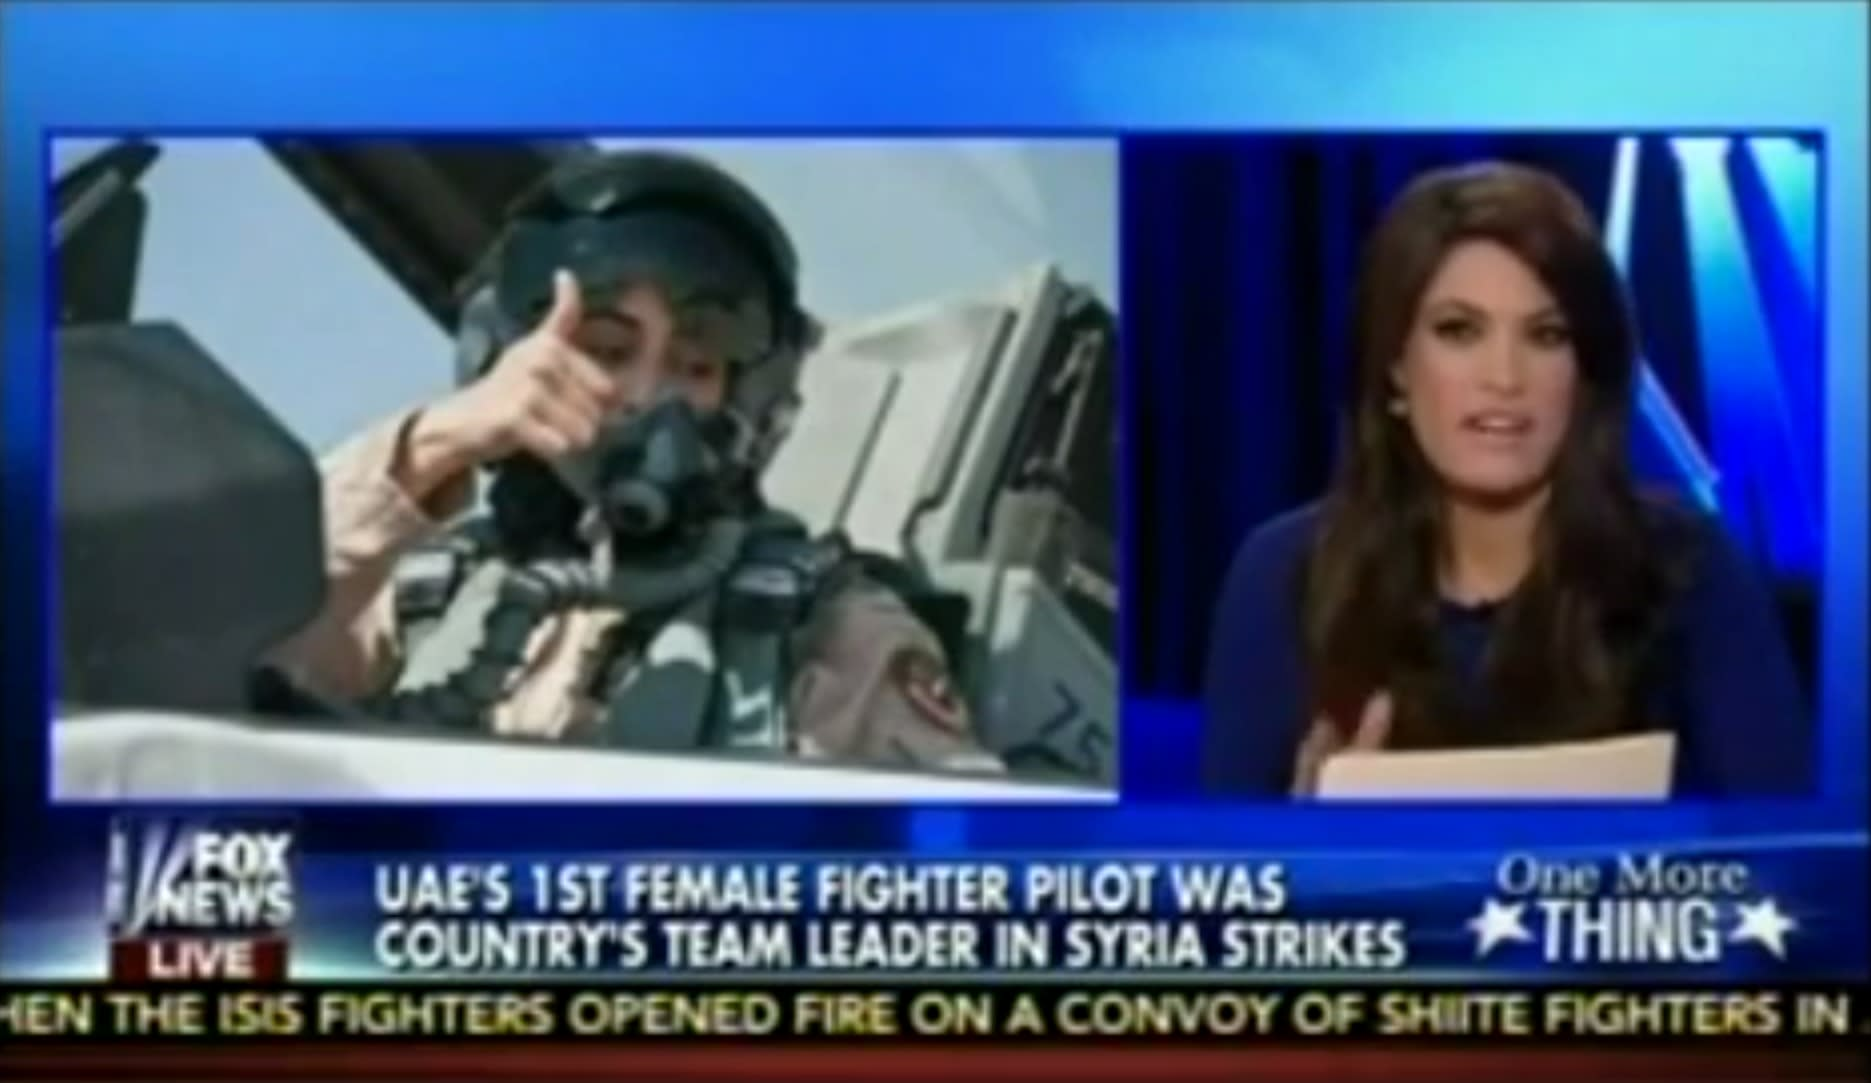 Fox News host Kimberly Guilfoyle (right) salutes U.A.E. Air Force Maj. Mariam al-Mansouri (left) for being a female fighter pilot bombing a place where women are not allowed to drive. (Fox News)